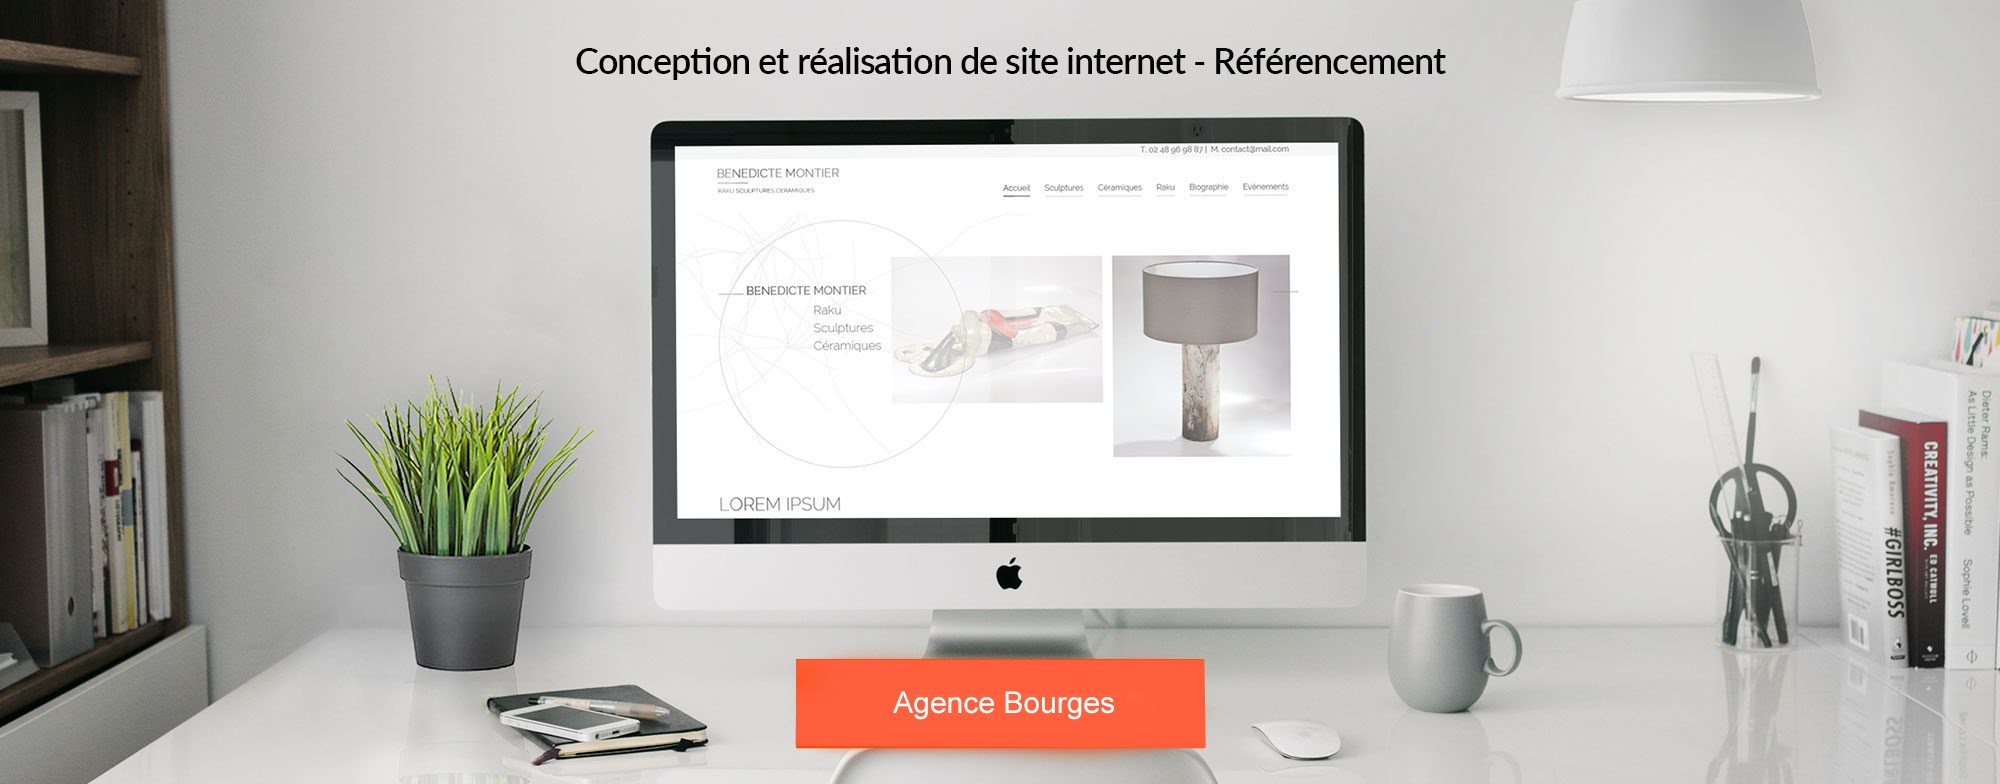 Cr ation de site internet bourges identit visuelle - Site internet a vendre pas cher ...